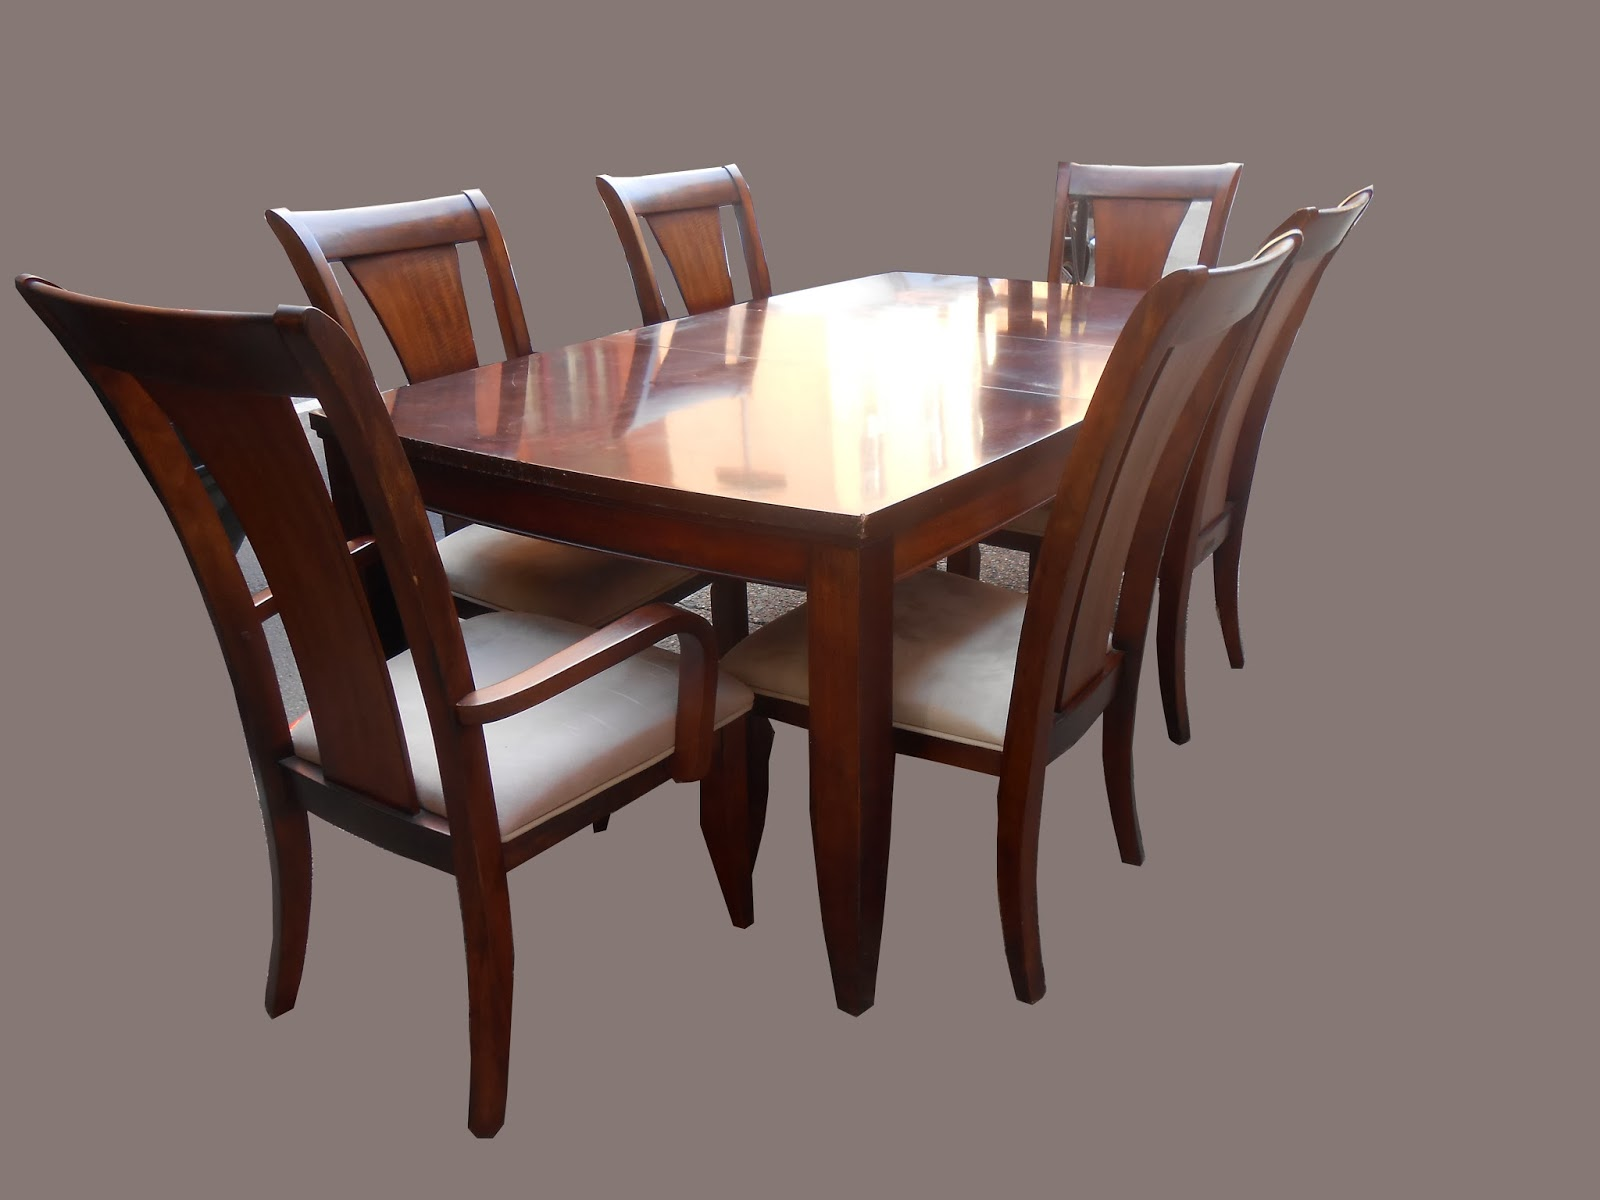 Gt Tables Gt Dining Tables Gt Avignon Wooden Dining Table 6 Seater Home Dining Dining Tables